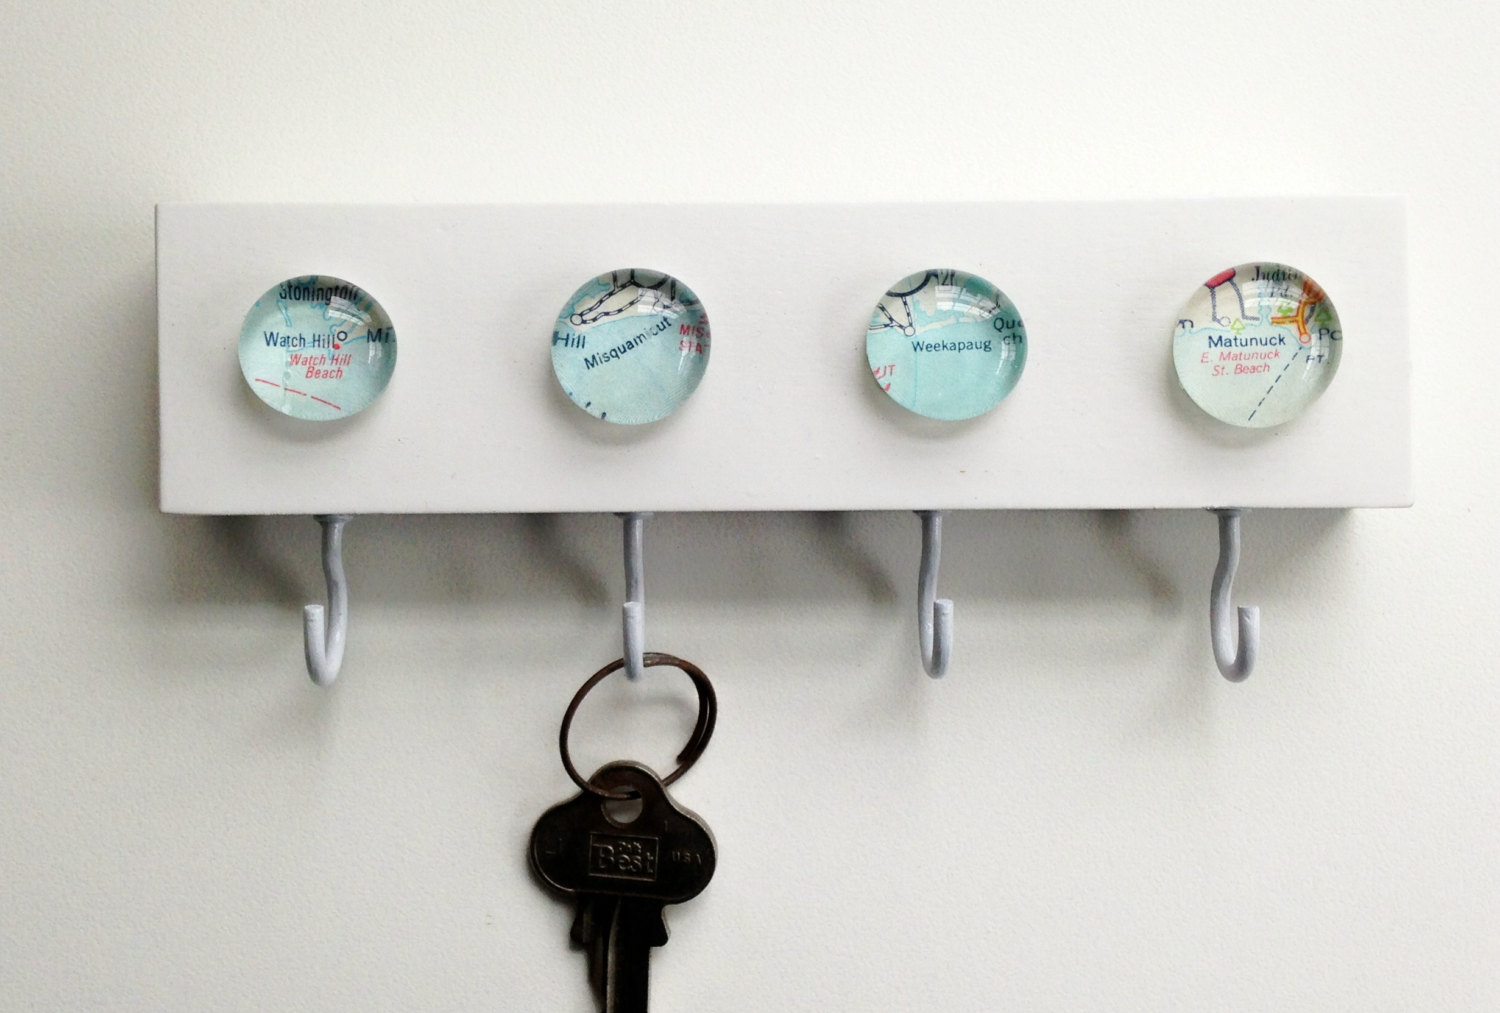 Key Holders For Wall A Solution For Not Losing Your Keys